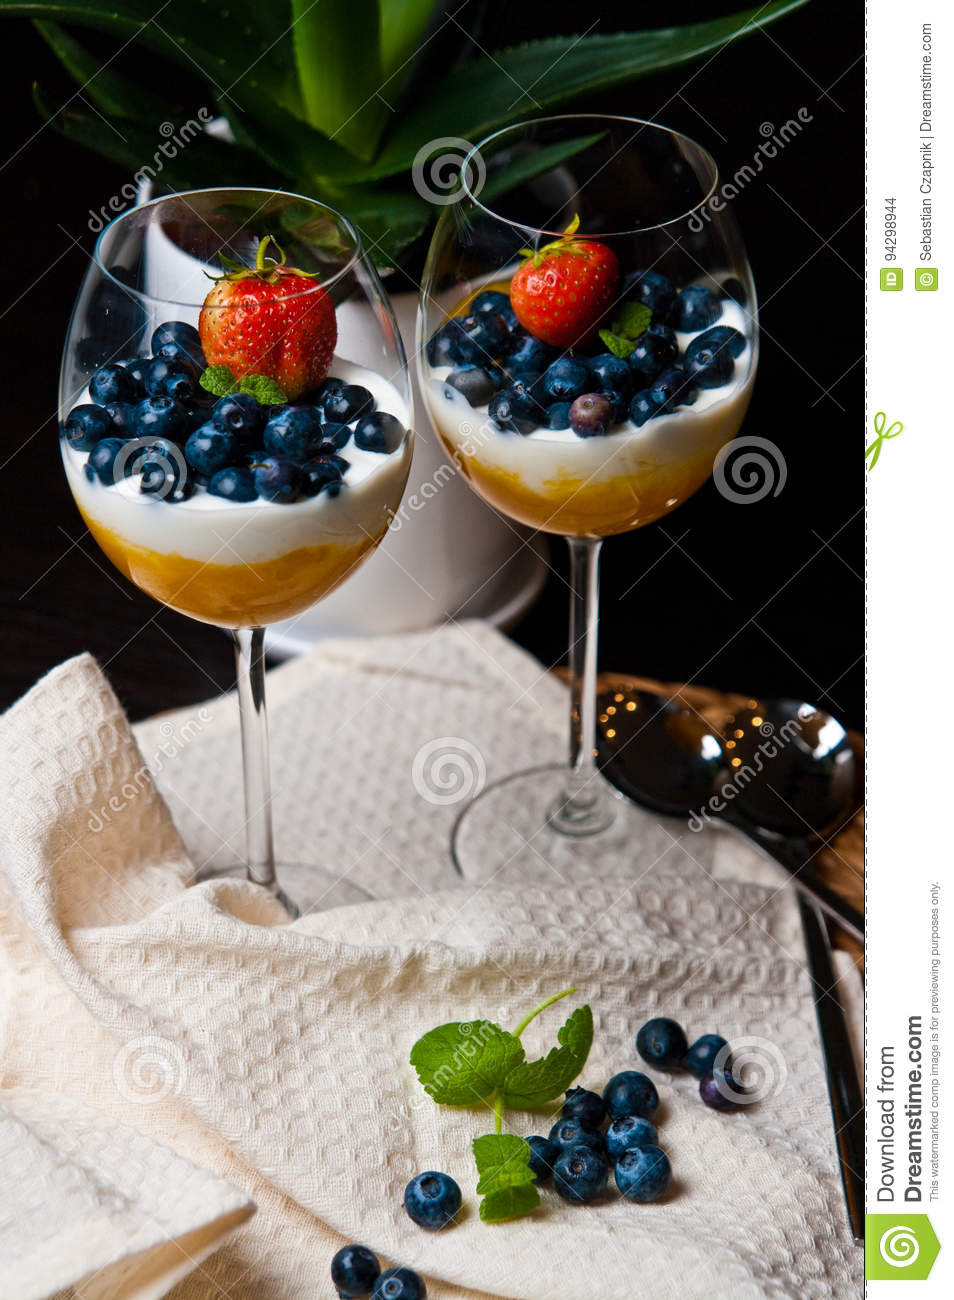 Mango mousse with blueberries in wine glasses